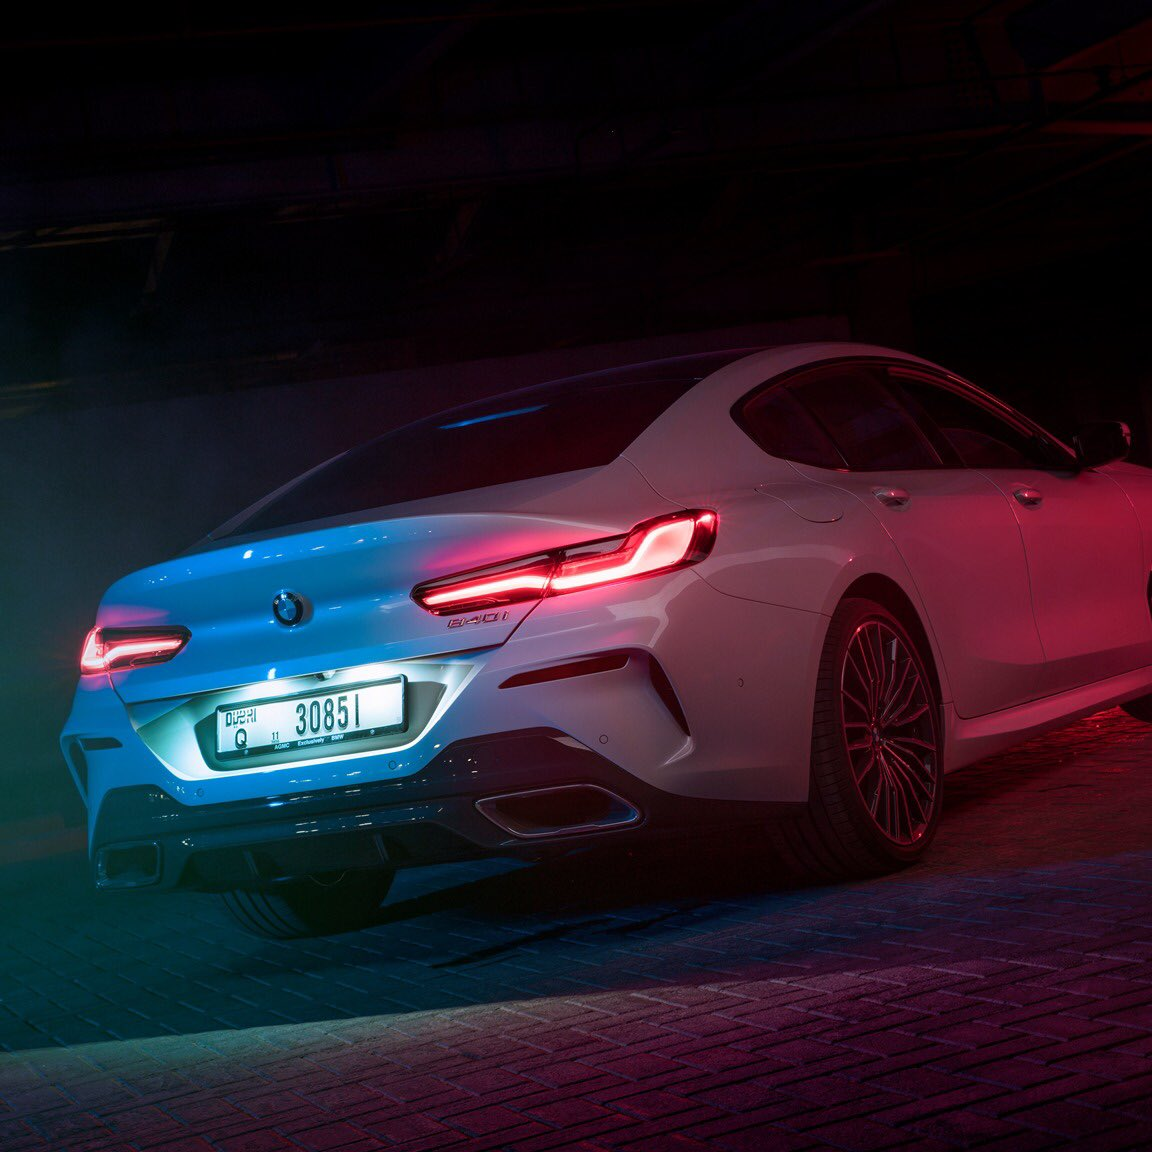 Every turn is a winning lap with the 8 Gran Coupé.  #BMW8Series #BMWAGMC https://t.co/yDmClGiIml